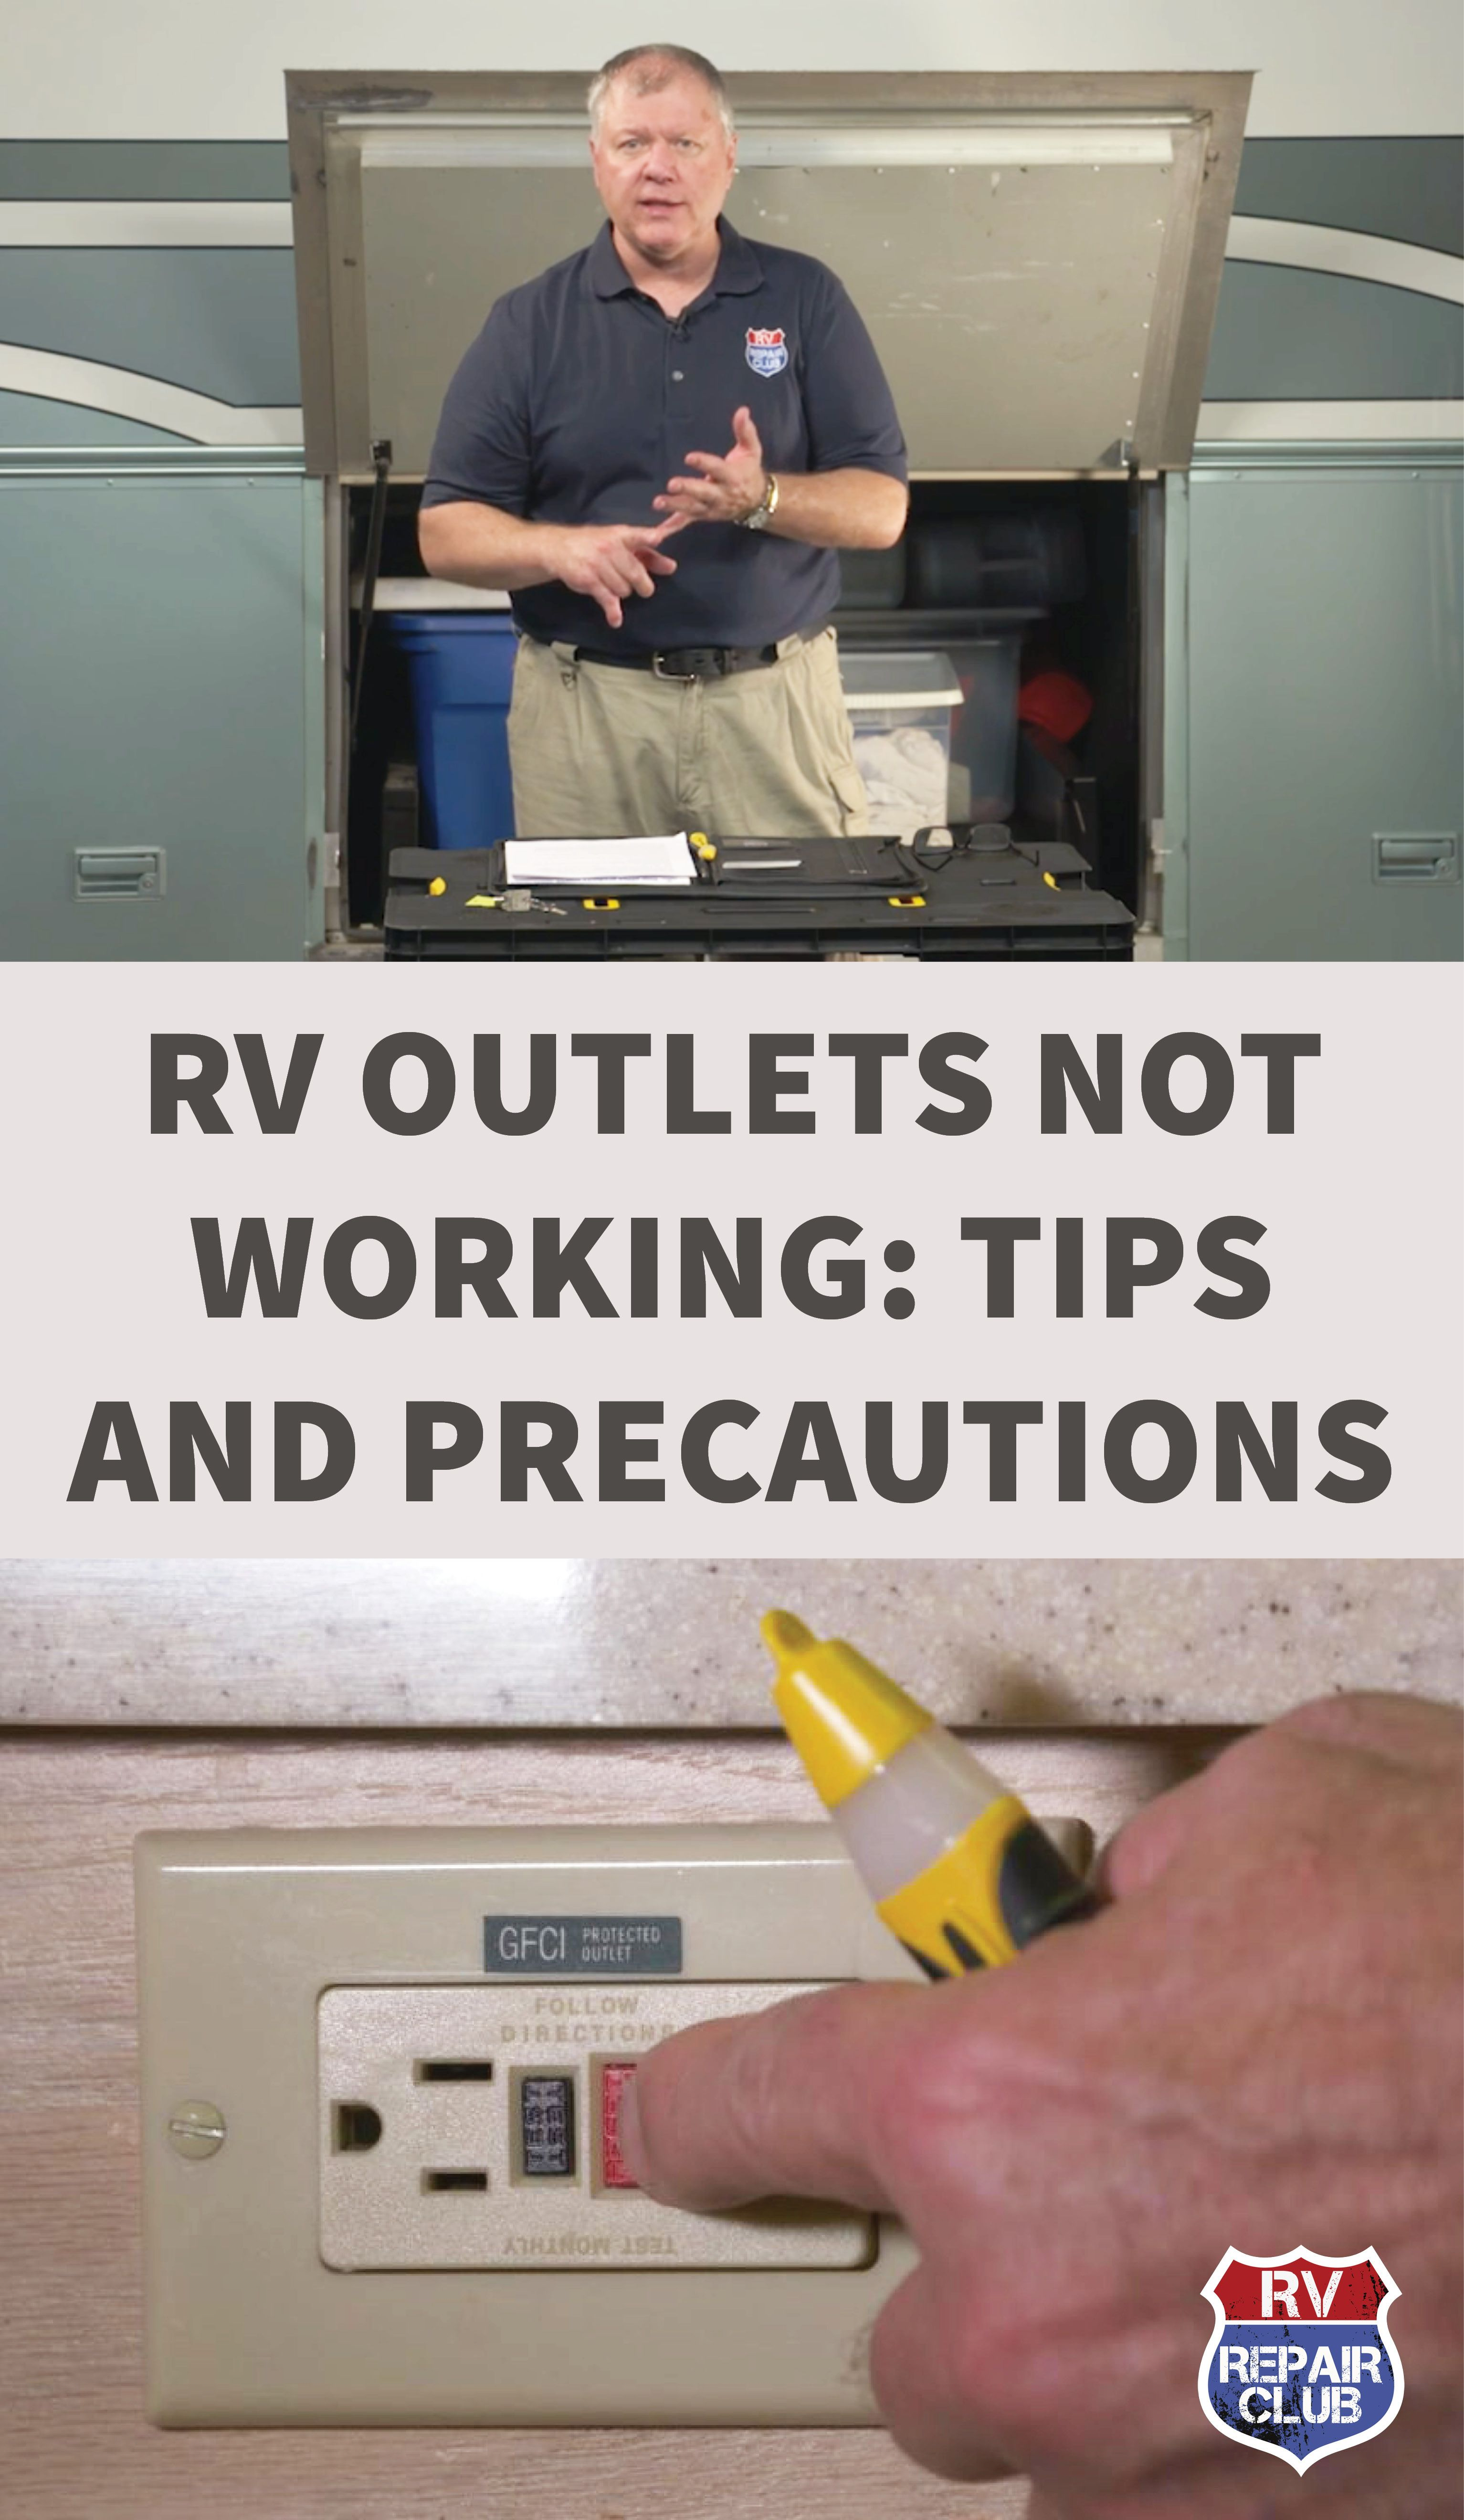 Rv Outlets Not Working Troubleshooting Tips With Images Rv Outlet Rv Repair Rv Maintenance